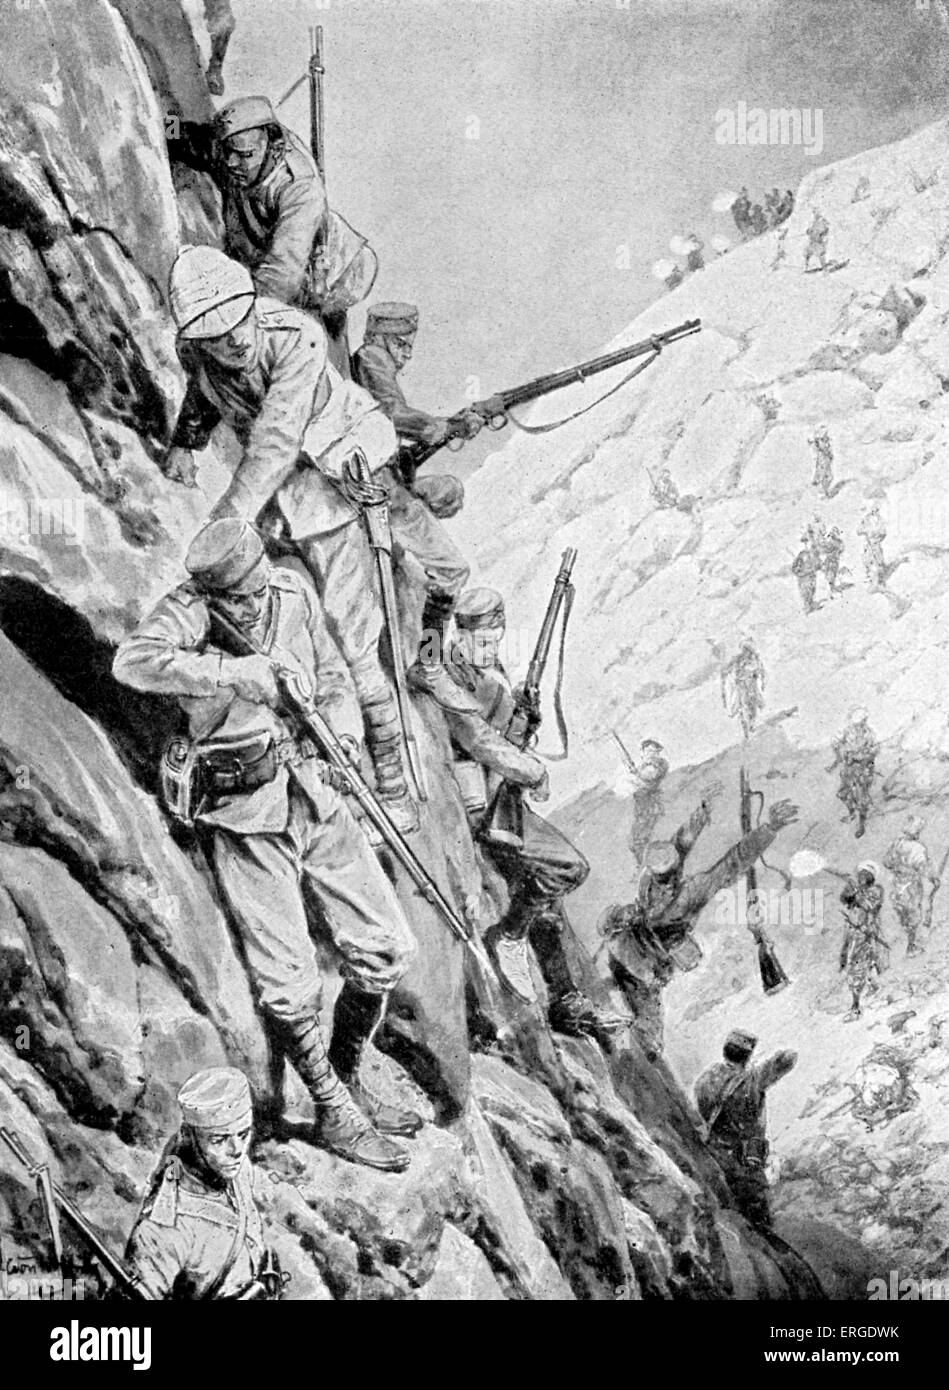 Gurkhas descending a pass under fire. During 1897 there was a series of attacks on British forces along the Afghan - Stock Image